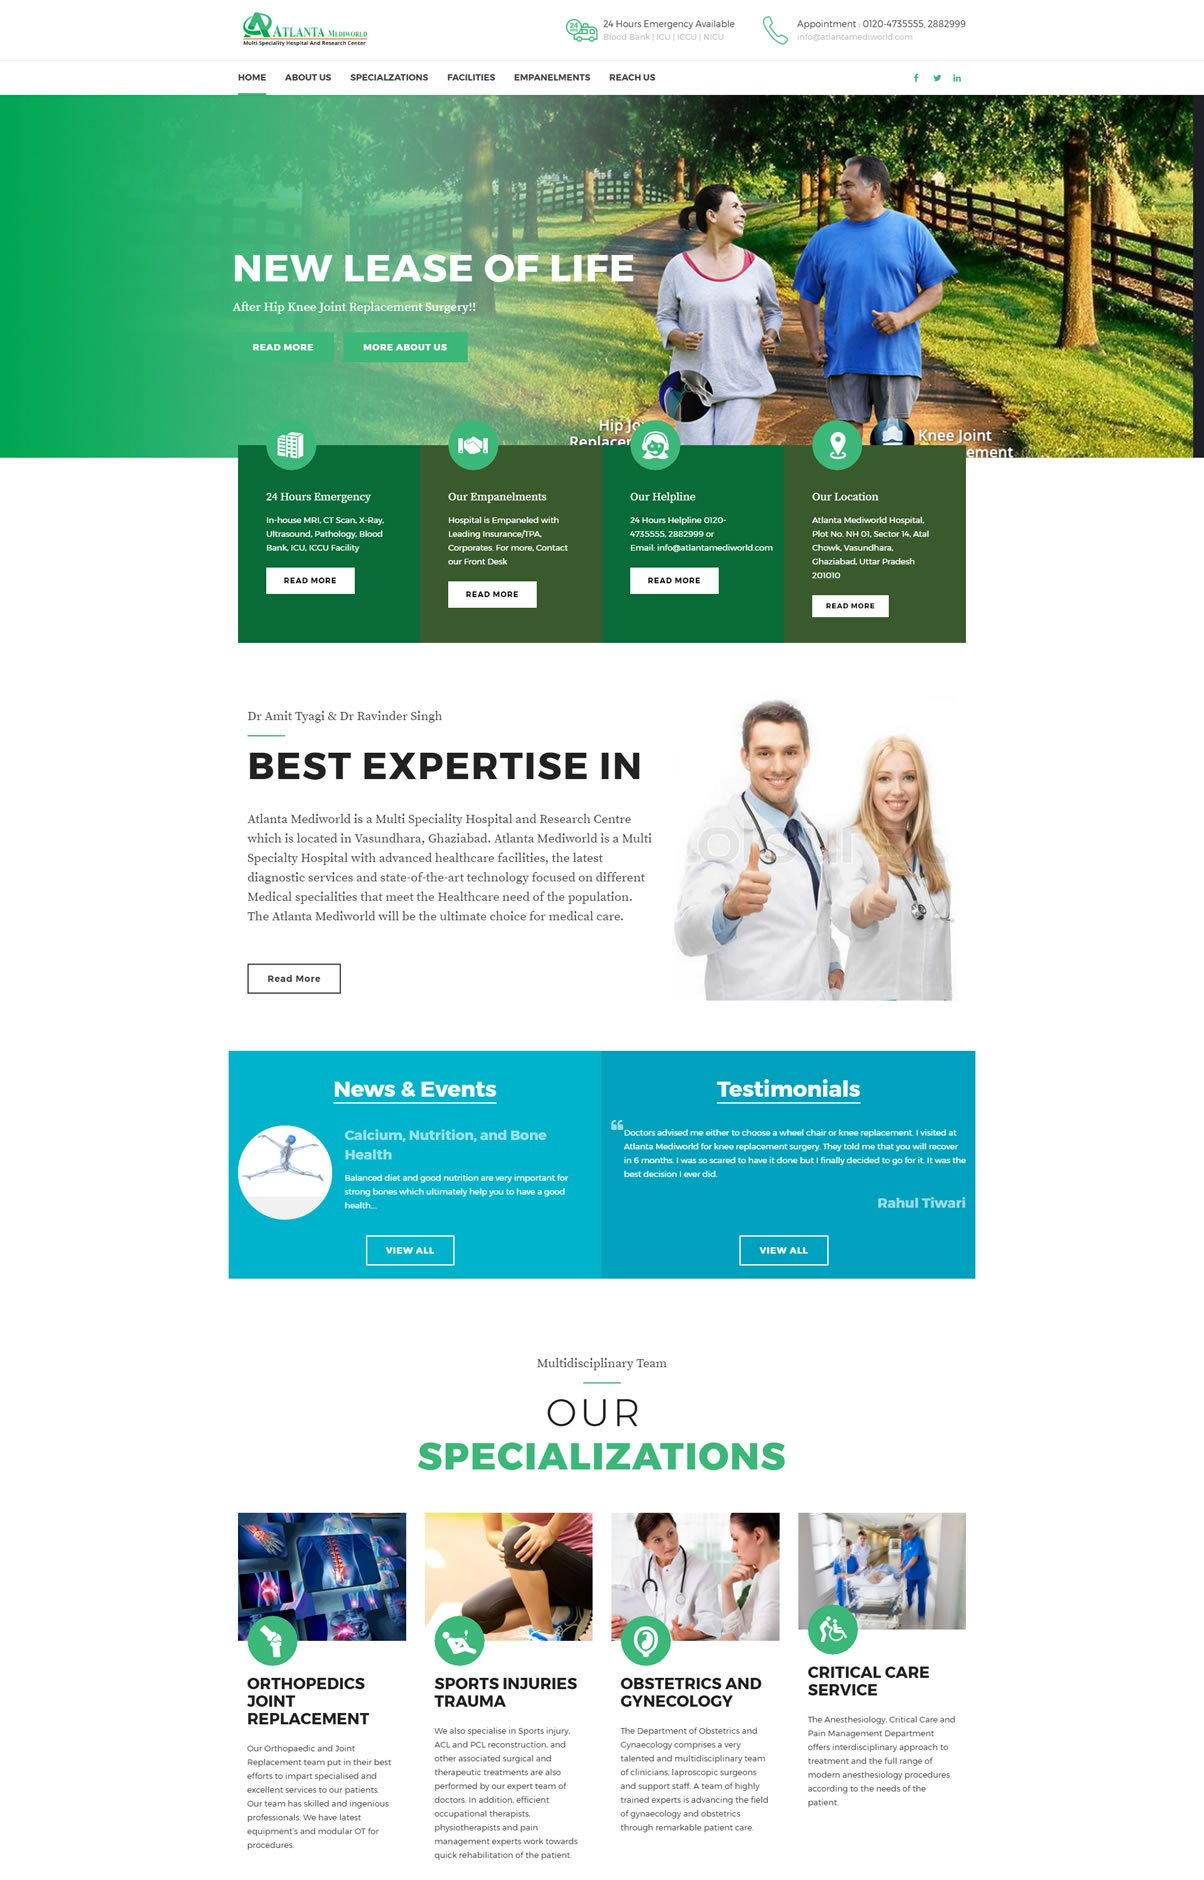 Hospital-website-designing-company-1